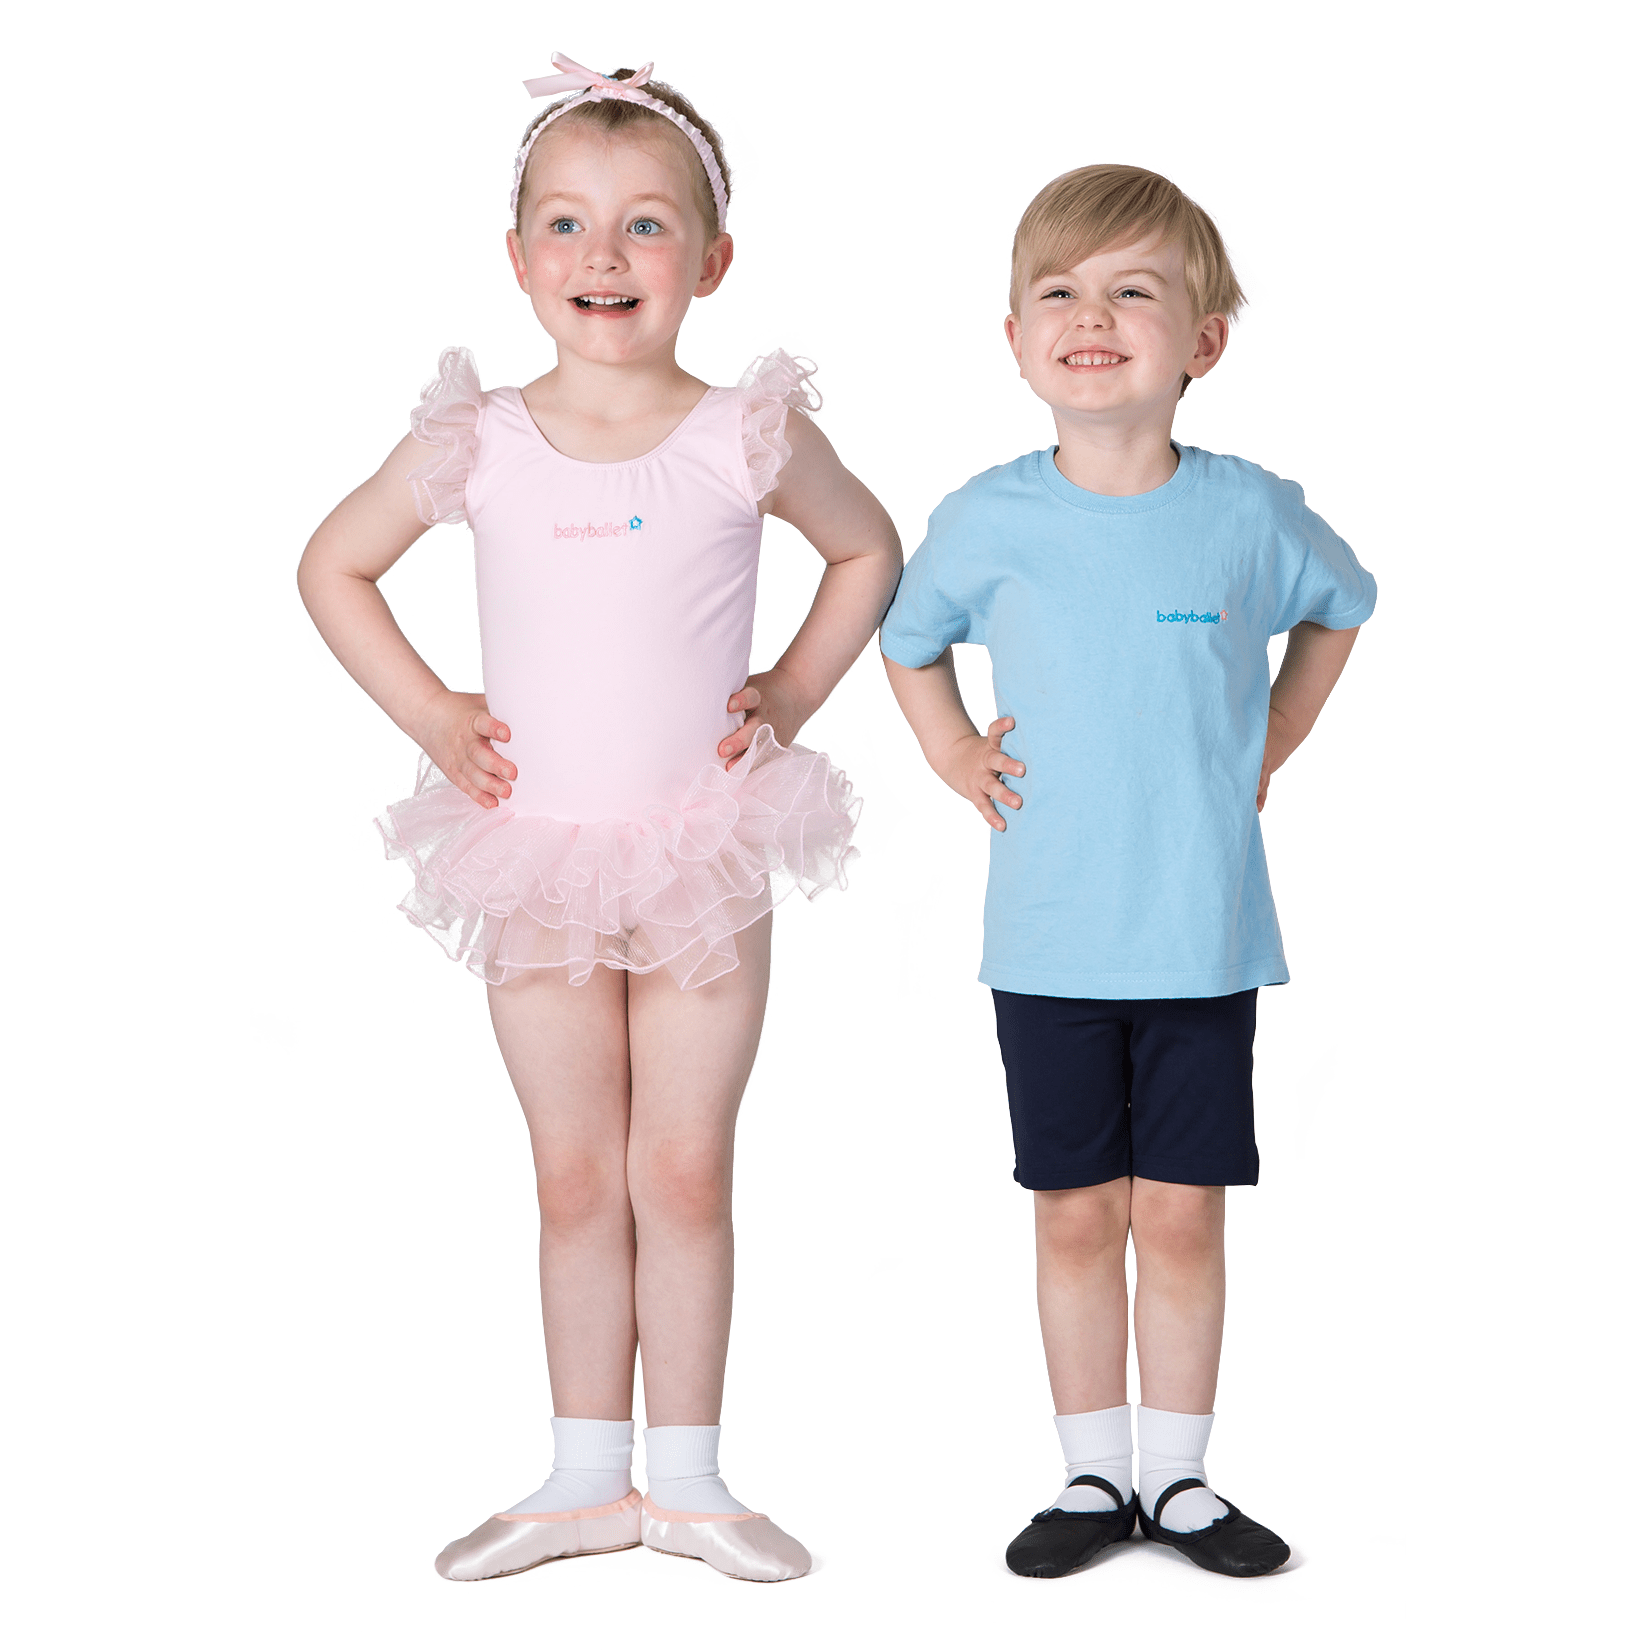 d51f49d1c Tutu, leotards, dancing skirts, ballet & tap shoes and more DANCEWEAR